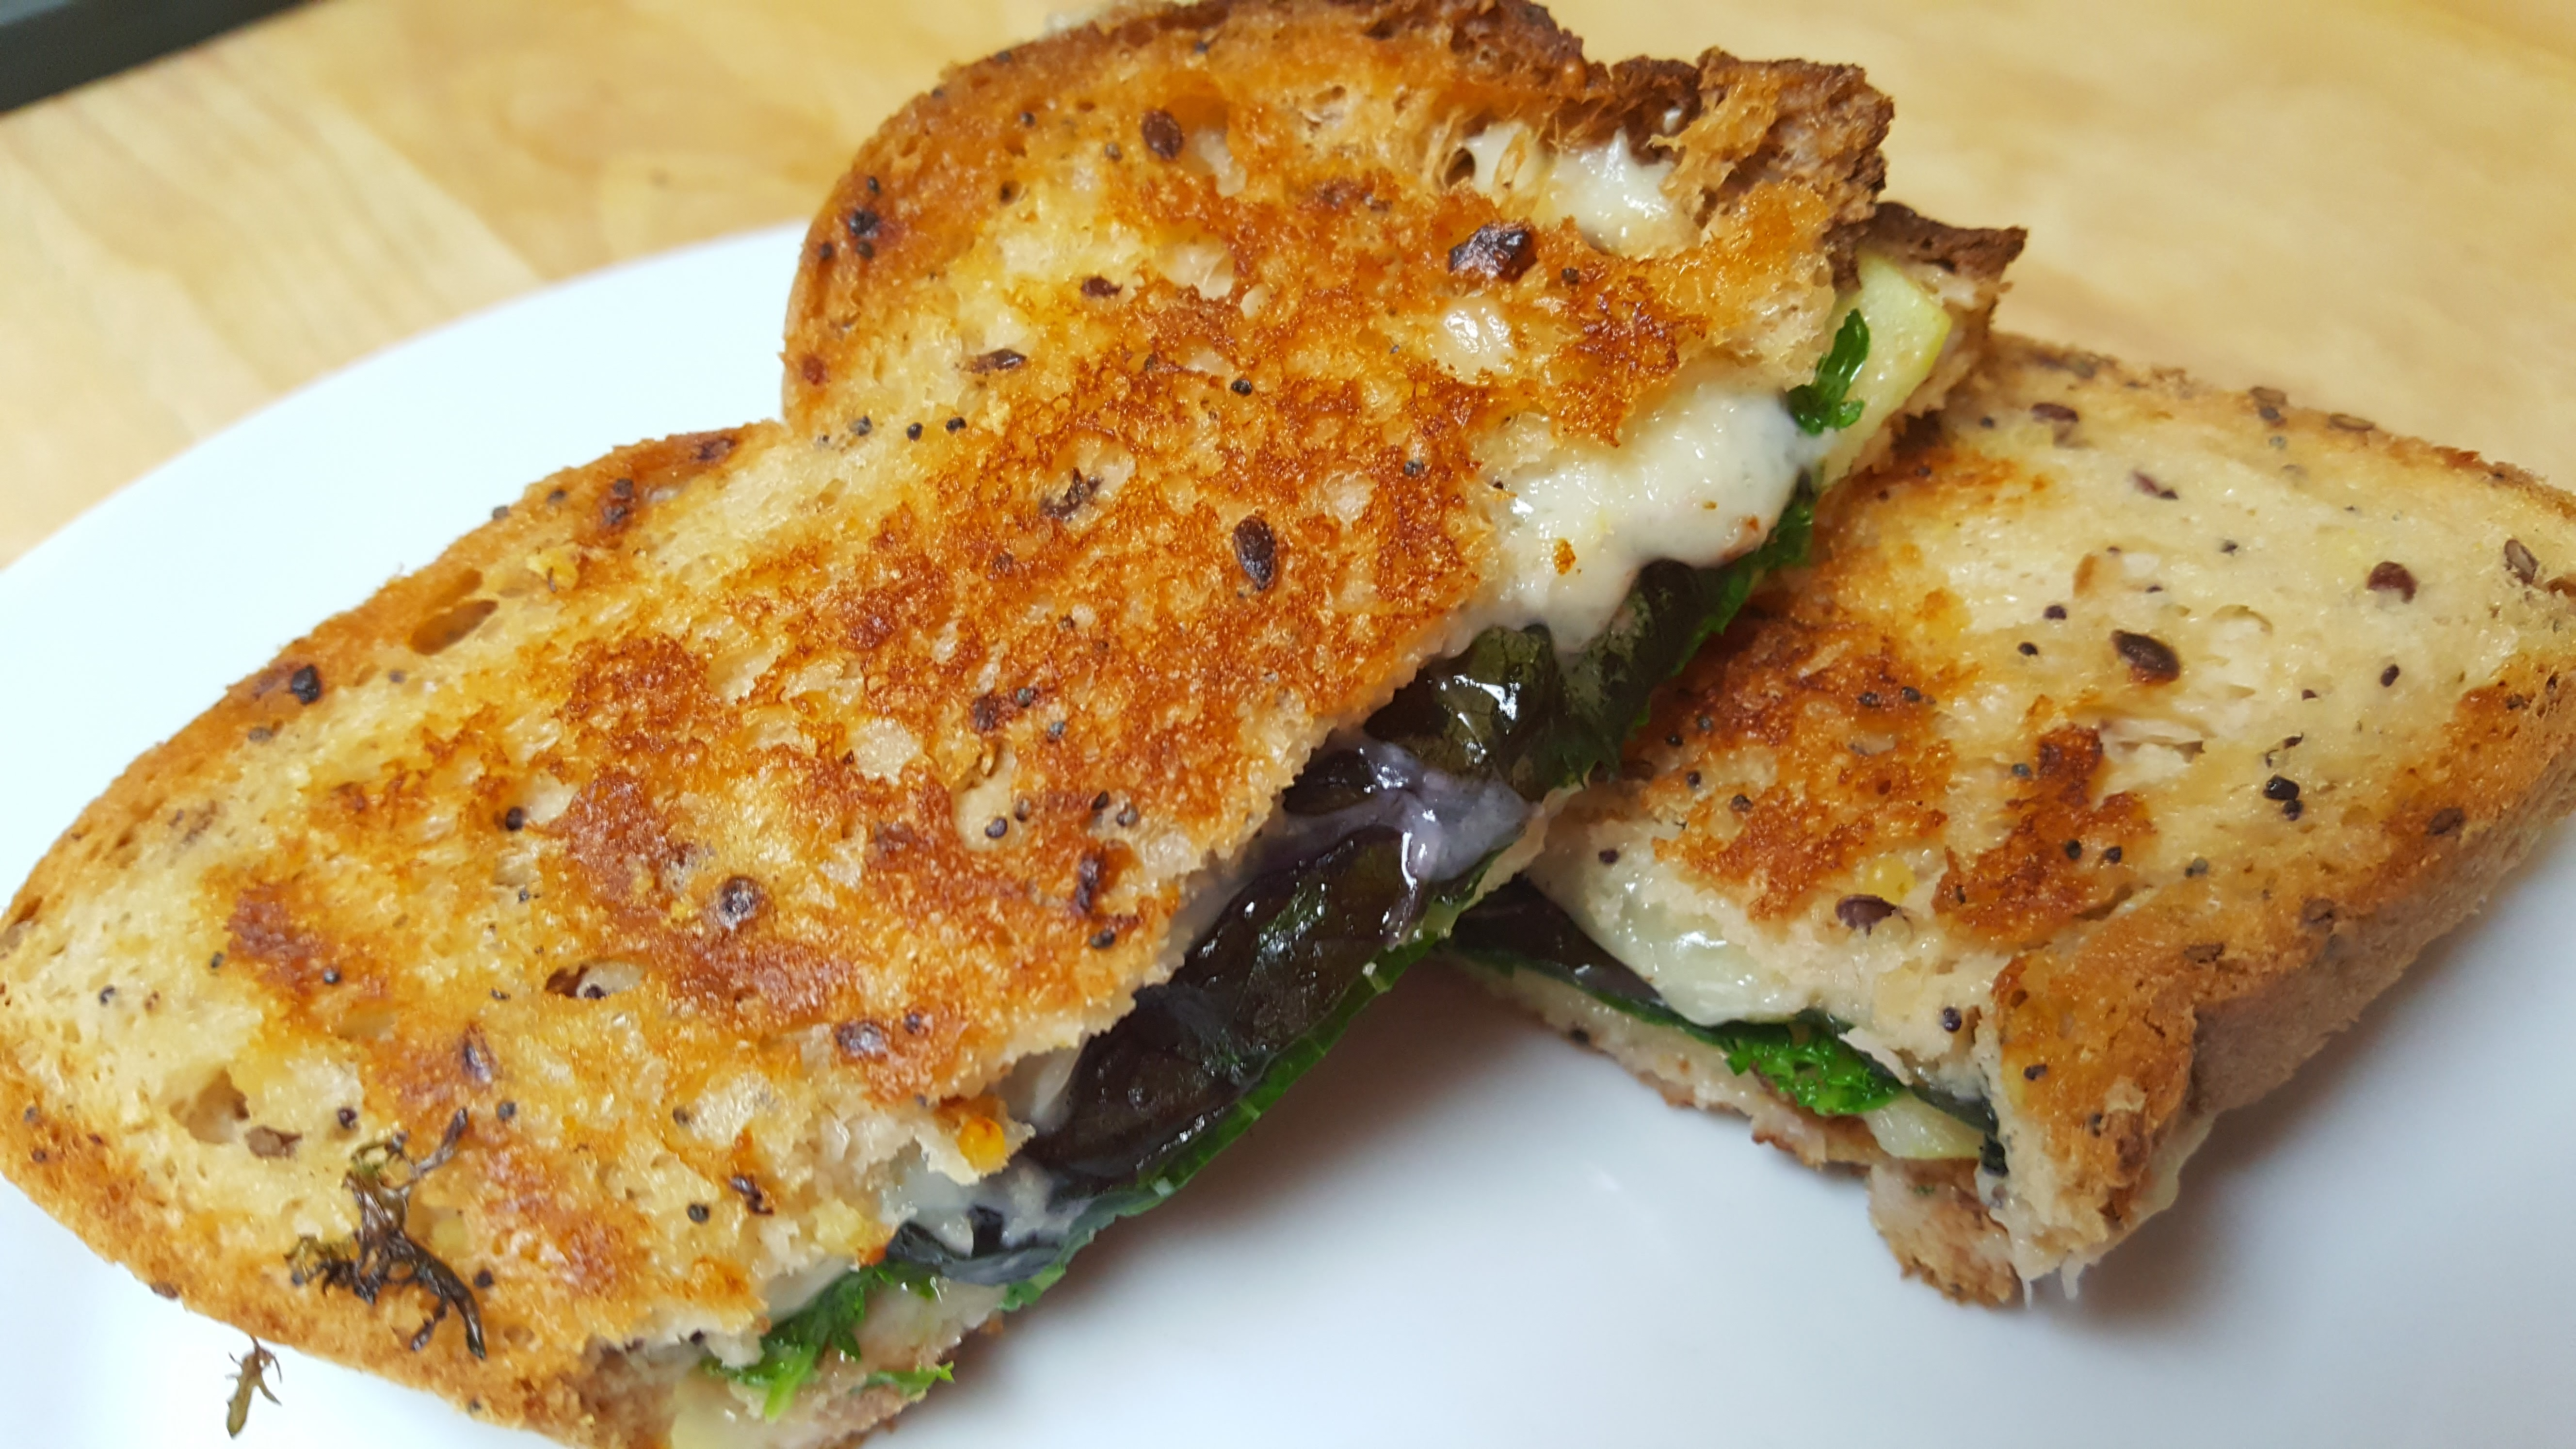 Gluten Free Grilled Cheese Sandwich